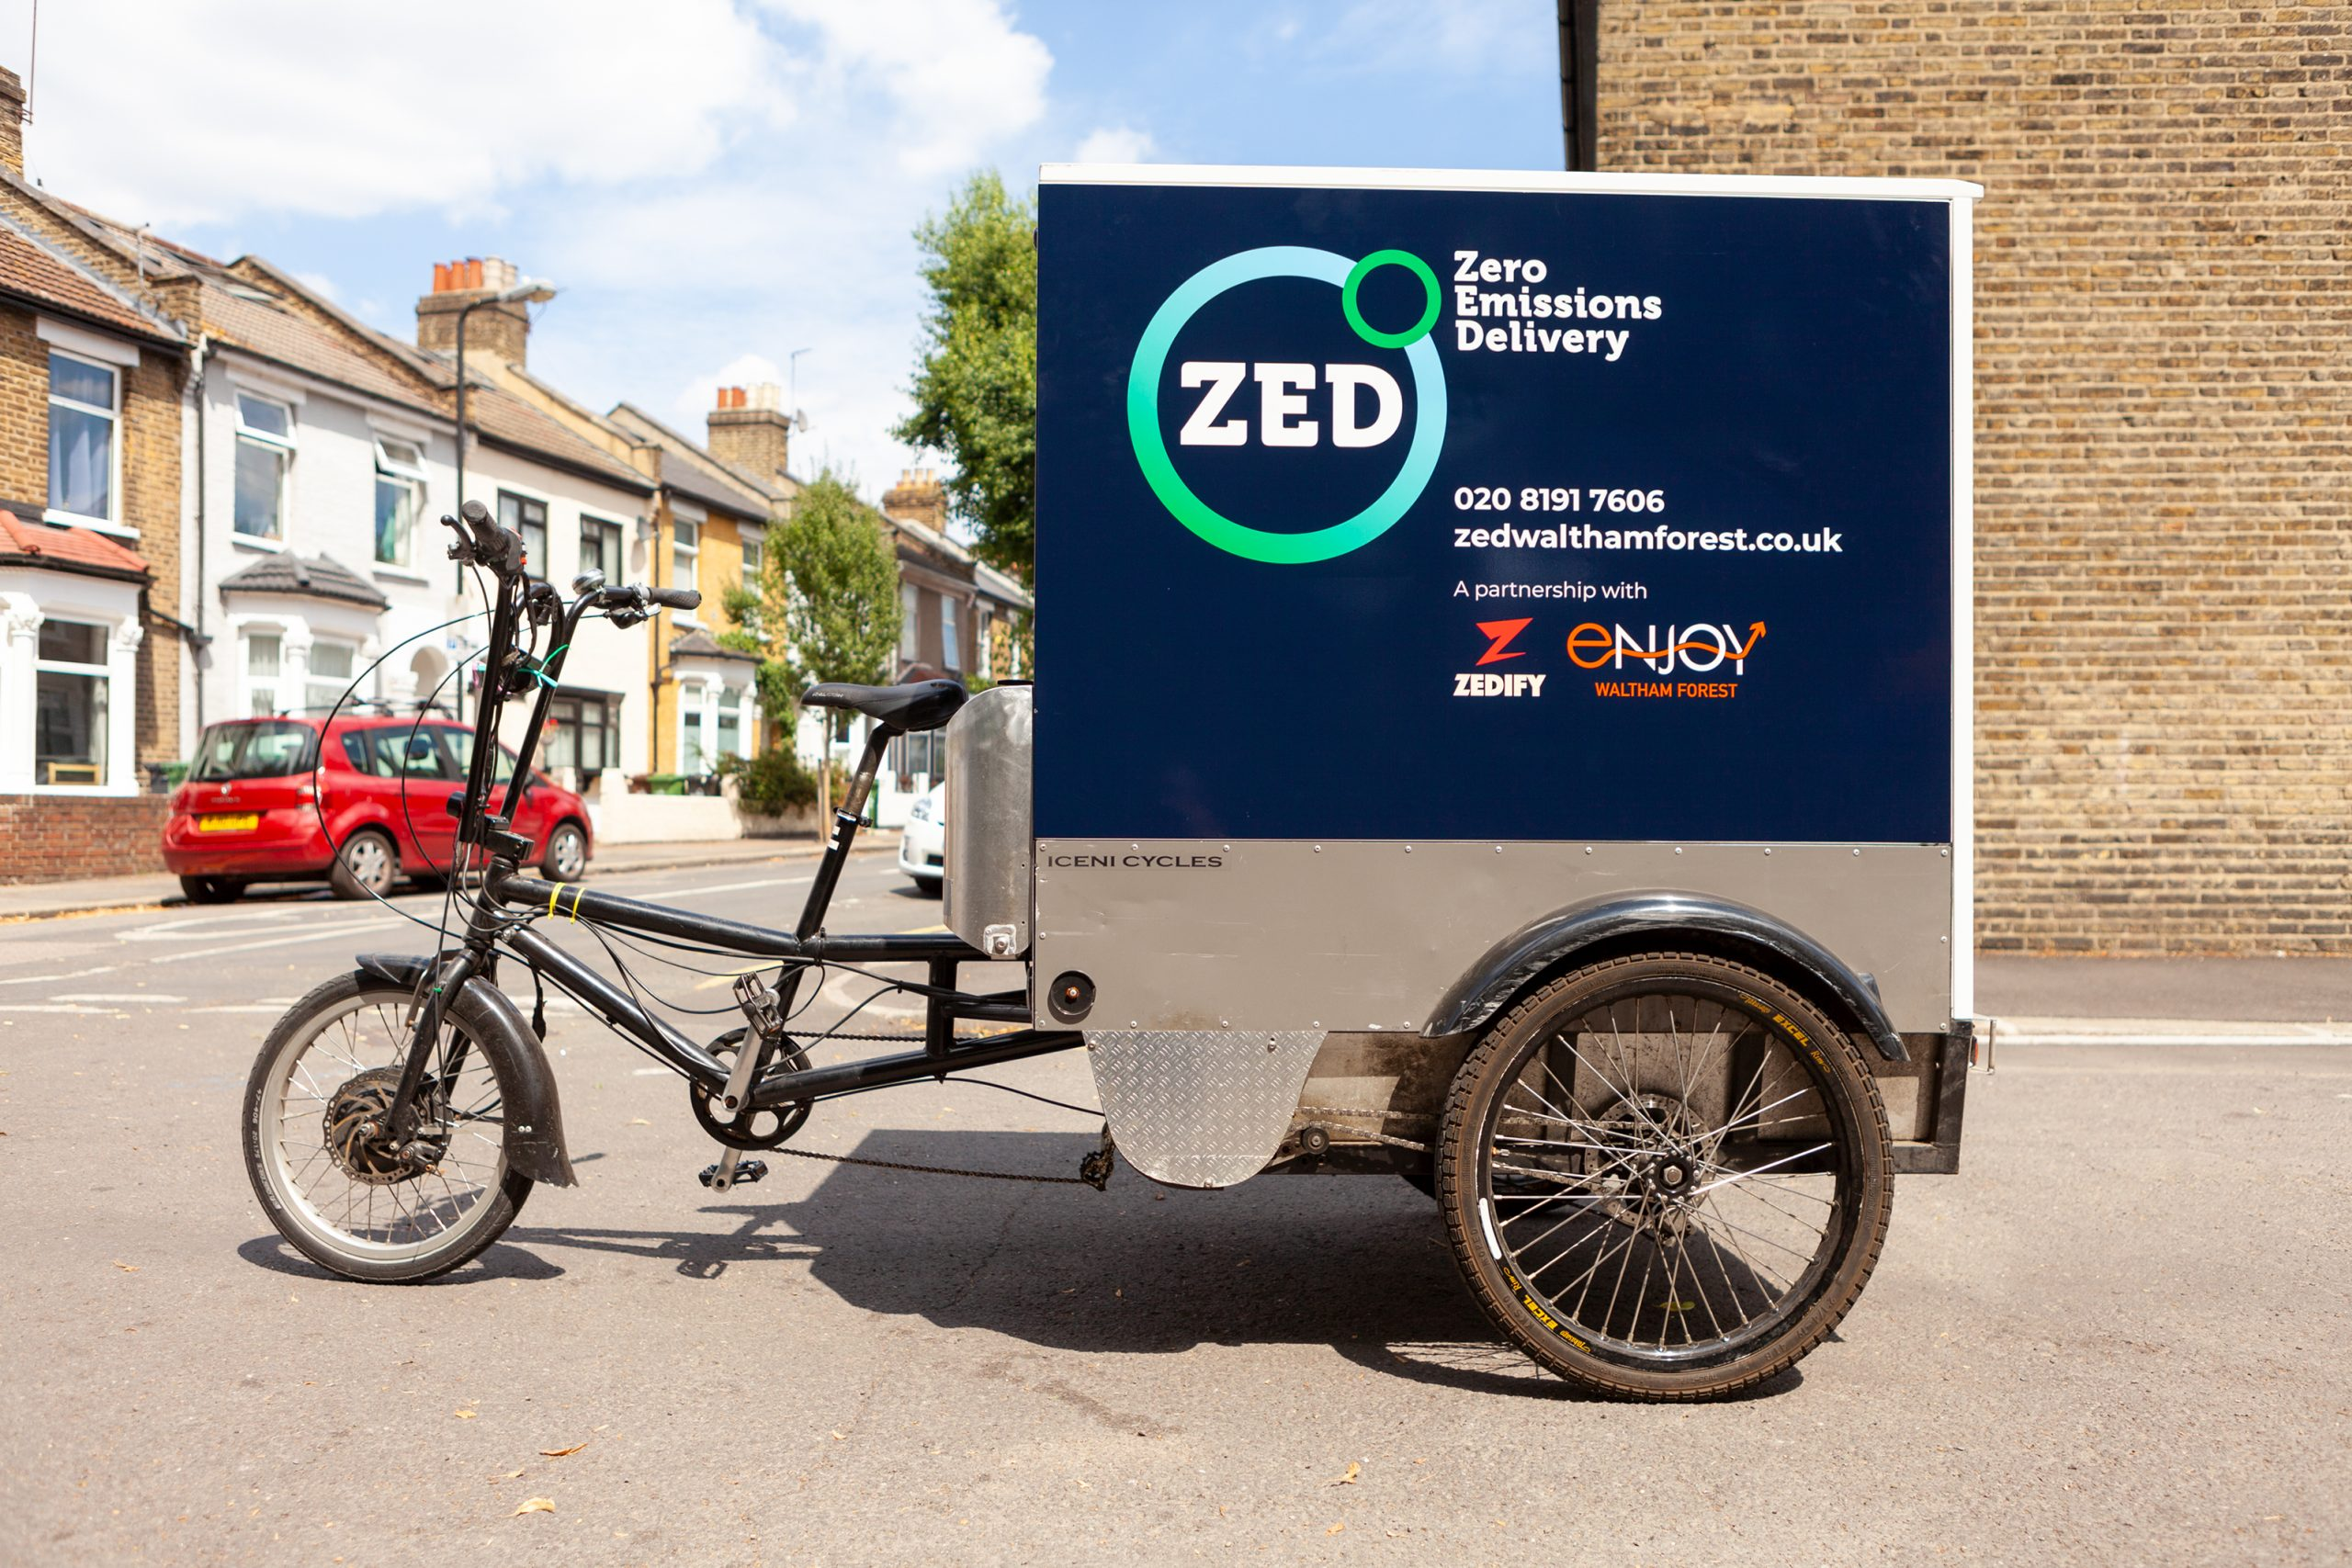 Cargo trike with Zed logo on the side